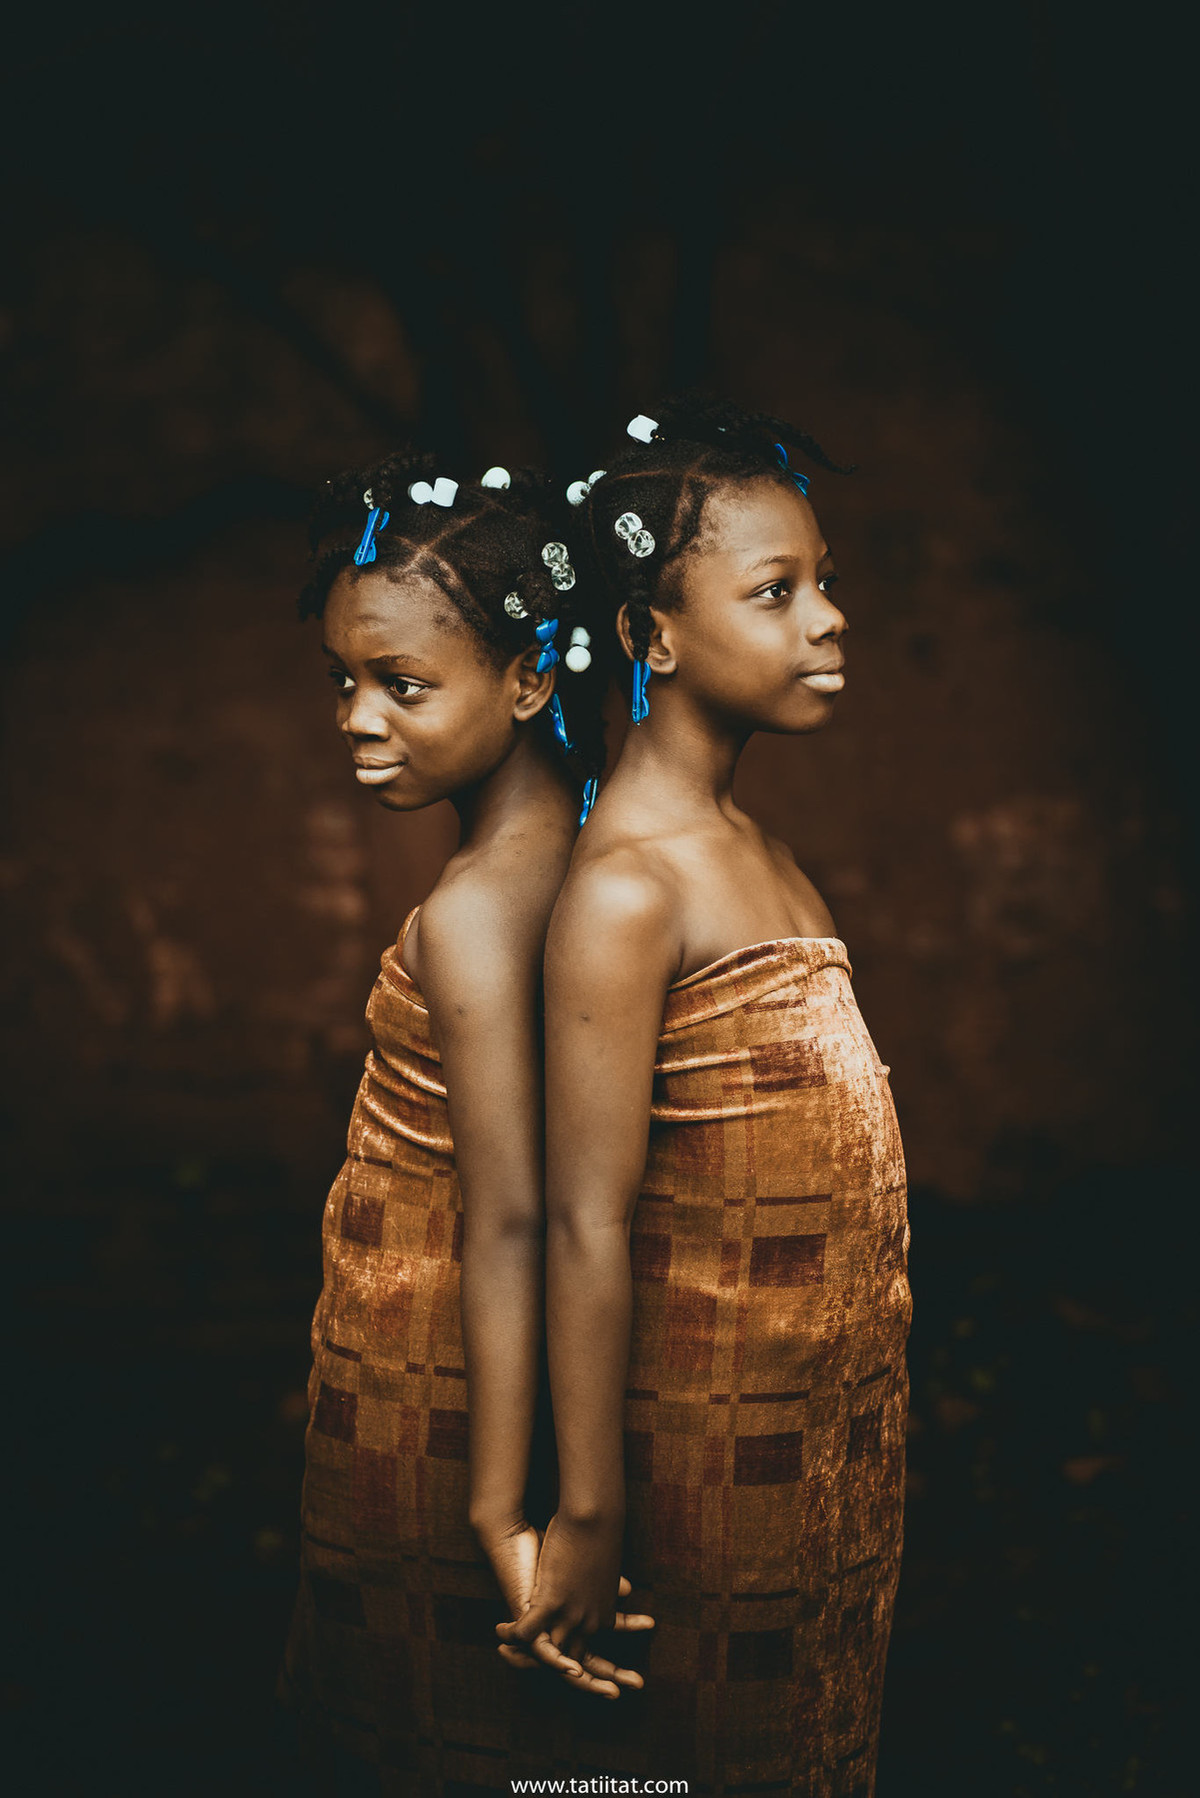 Haitian children living in Brazil photographed in a poetically inspiring and exciting way